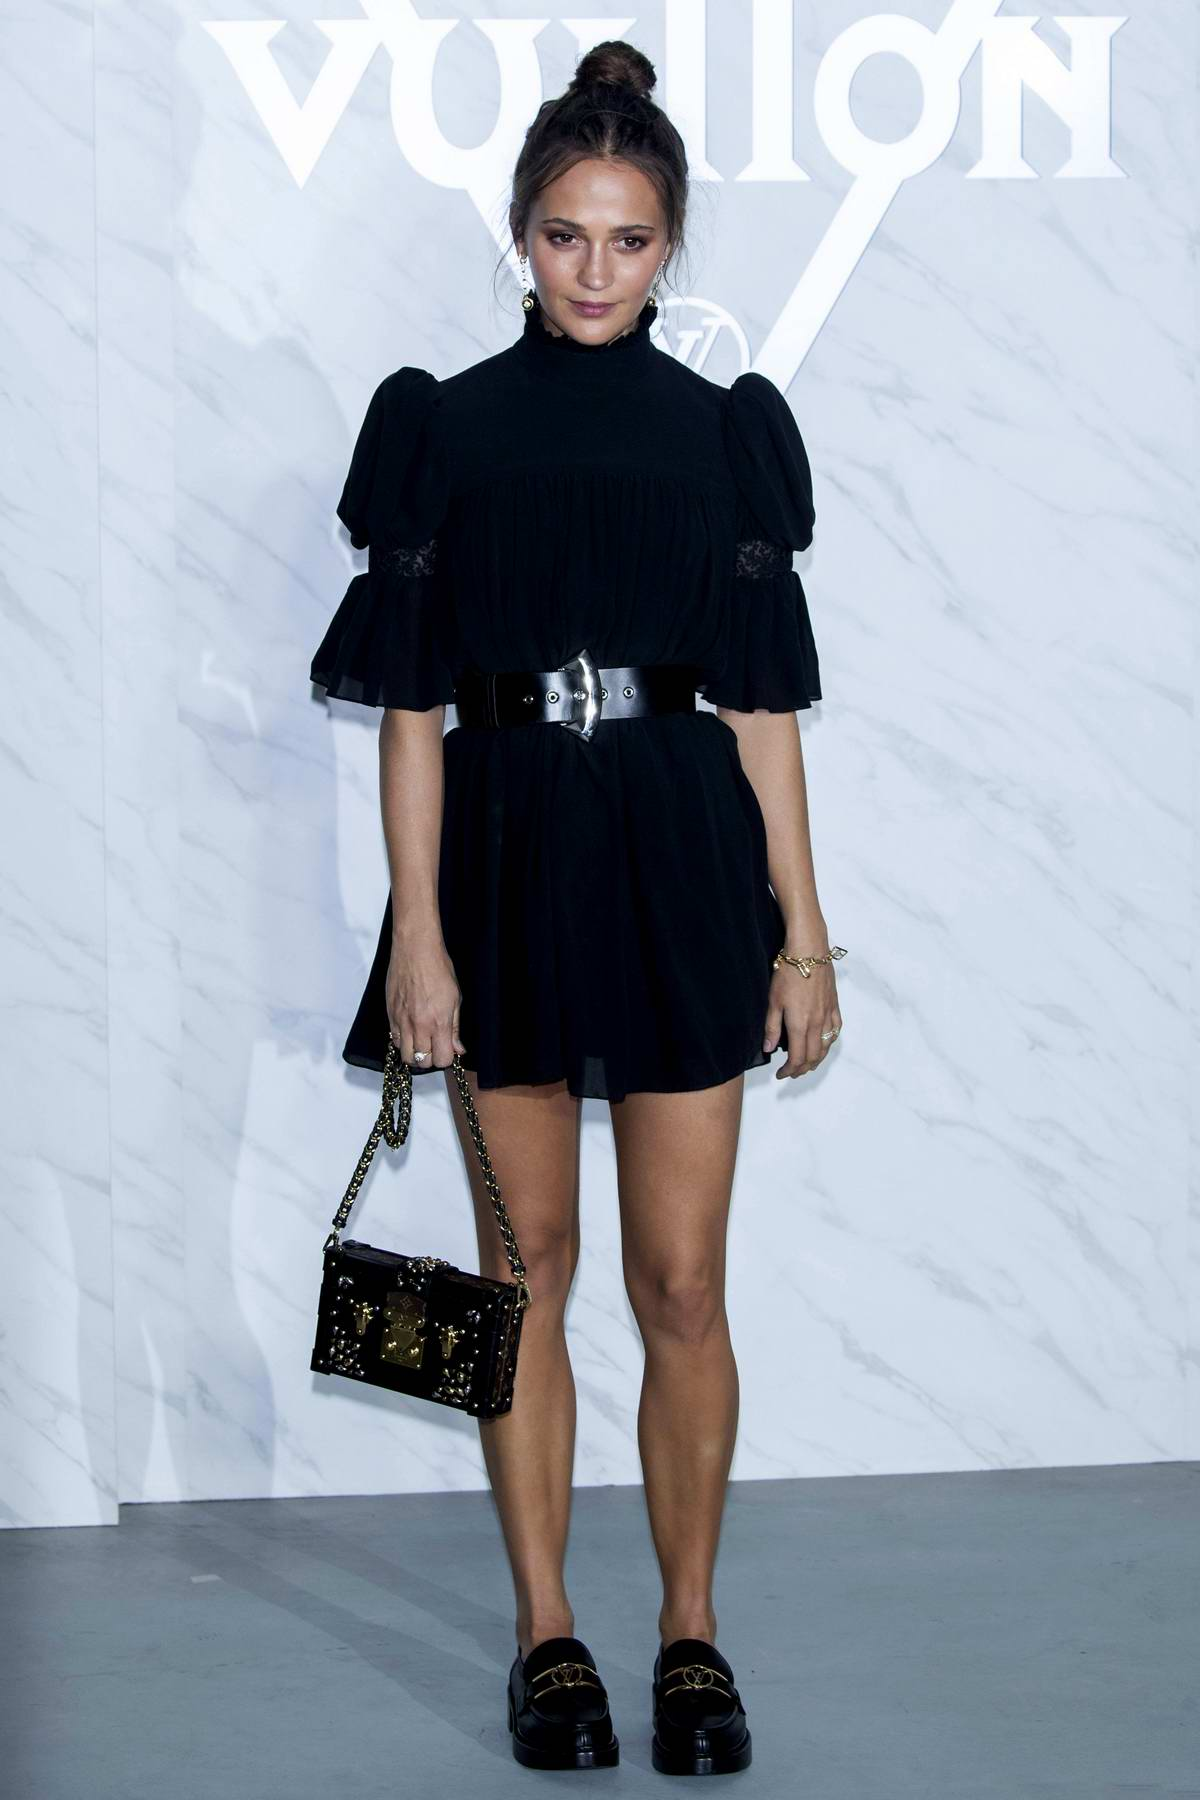 Alicia Vikander attends a photocall for the Louis Vuitton launch at Incheon International Airport in Seoul, South Korea